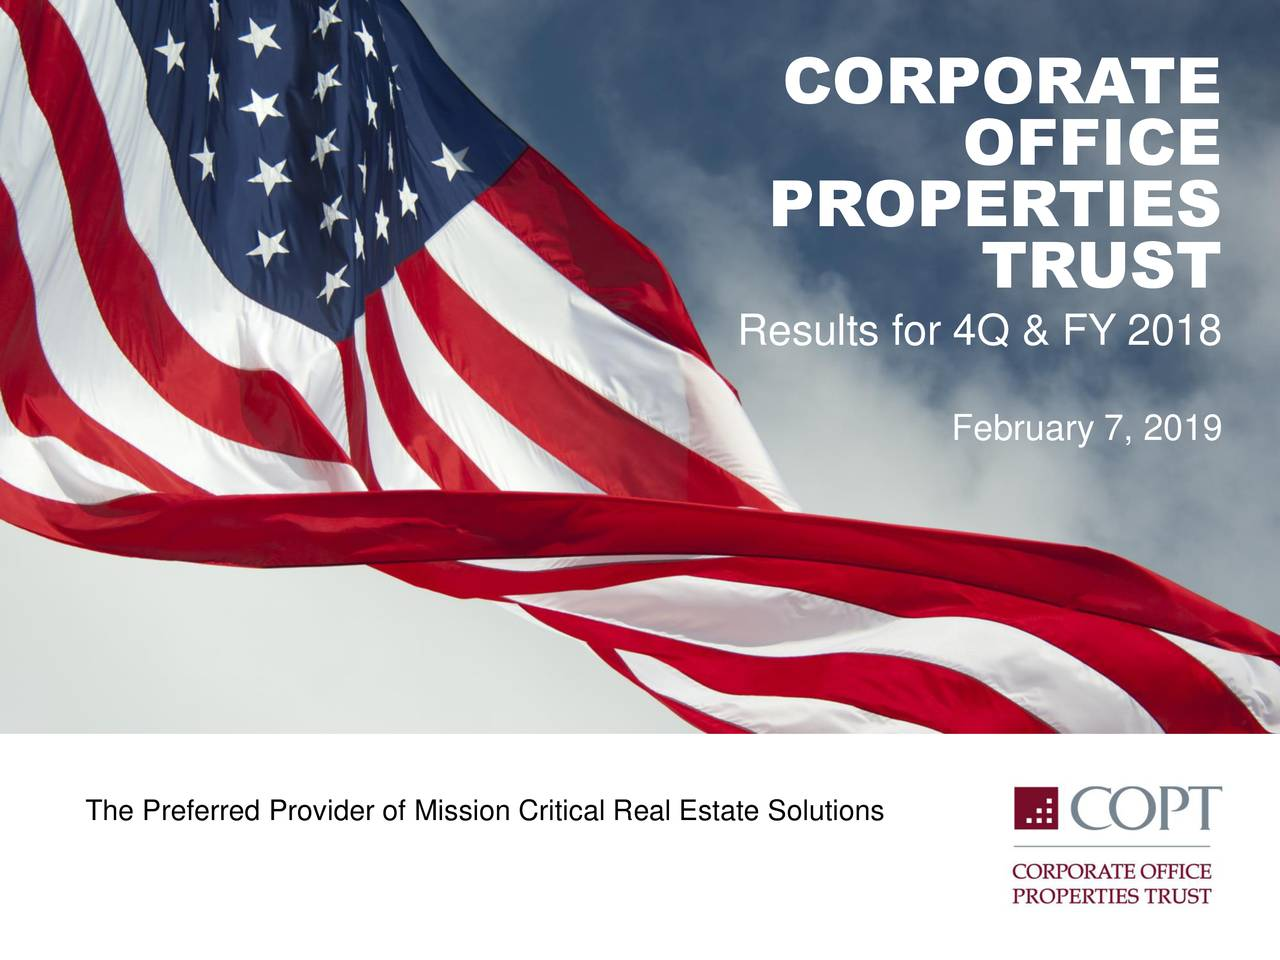 OFFICE PROPERTIES TRUST Results for 4Q & FY 2018 February 7, 2019 The Preferred Provider of Mission Critical Real Estate Solutions